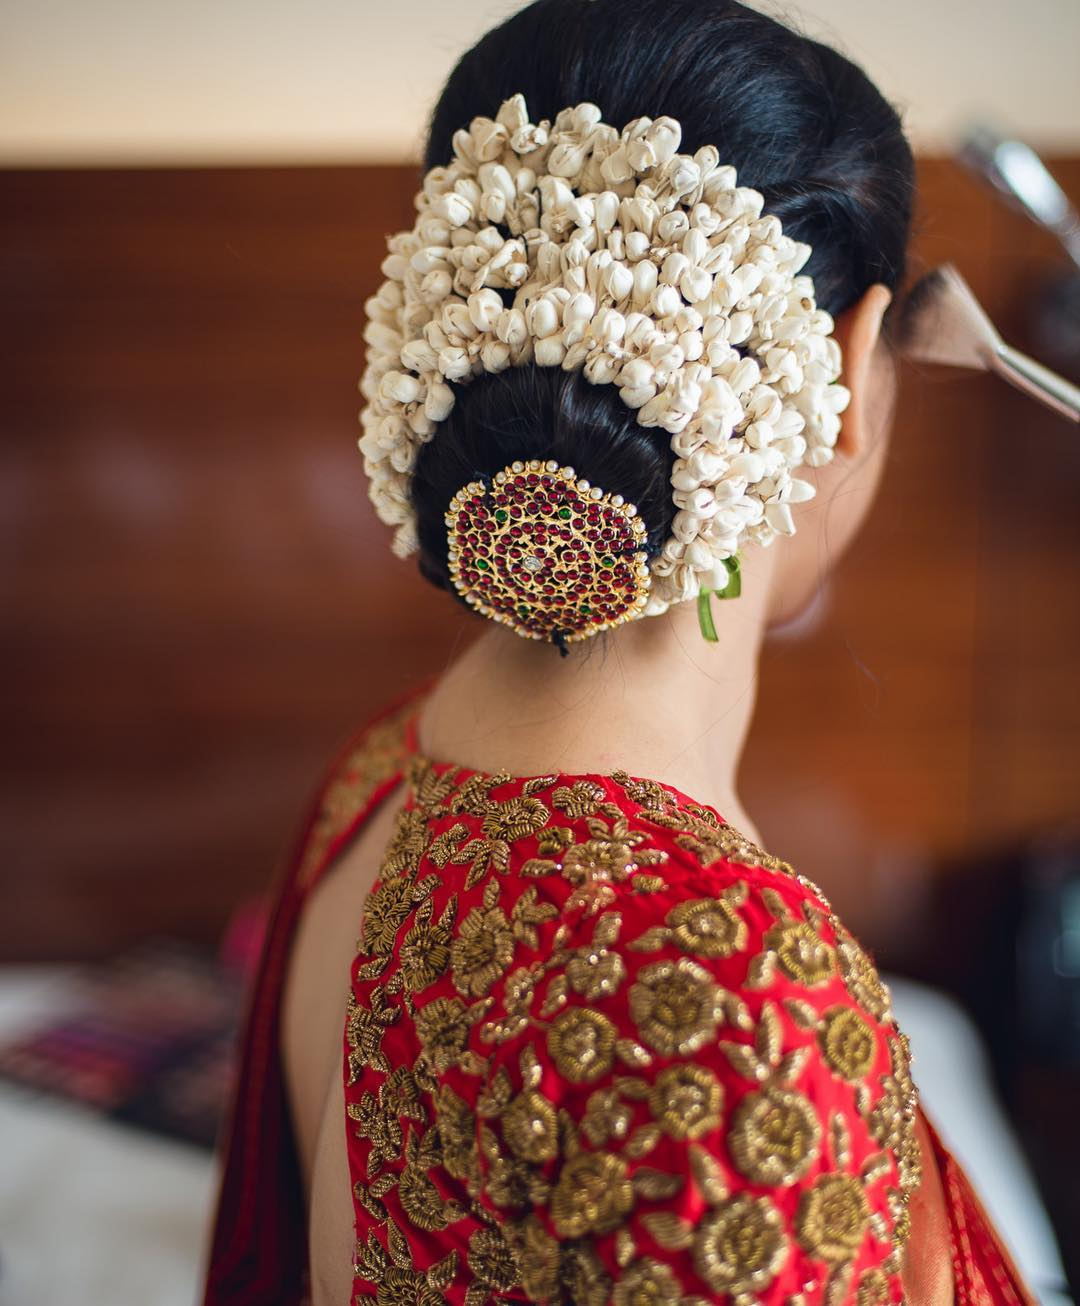 Wedding Hairstyle For Kerala Bride: 20 Unique And Trending Bridal Hair Accessories For The